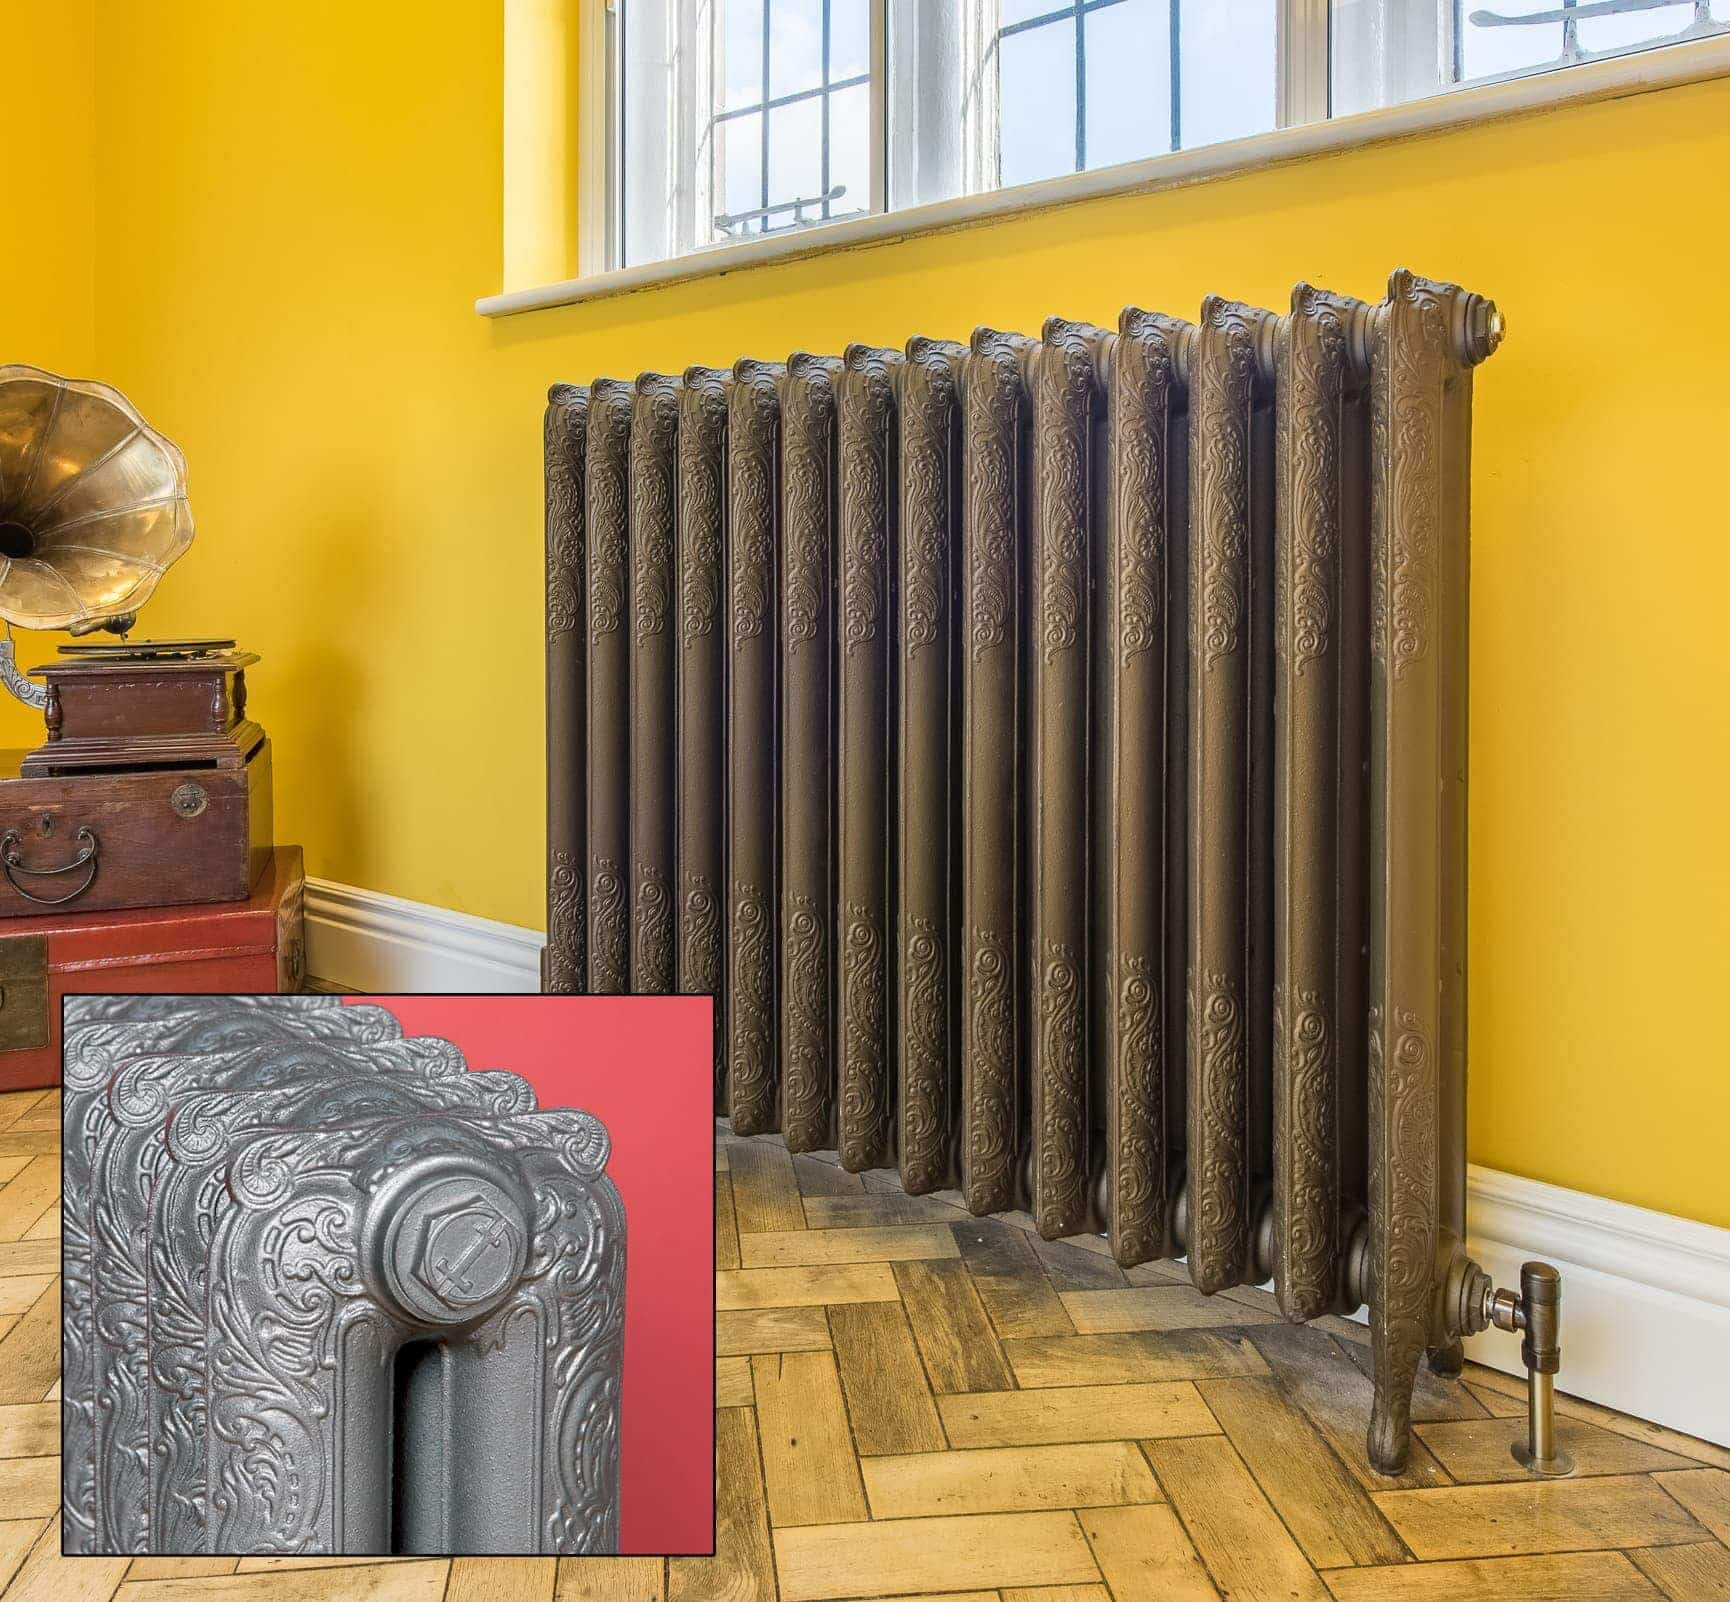 Liberty Cast Iron Radiators (510mm to 954mm high)